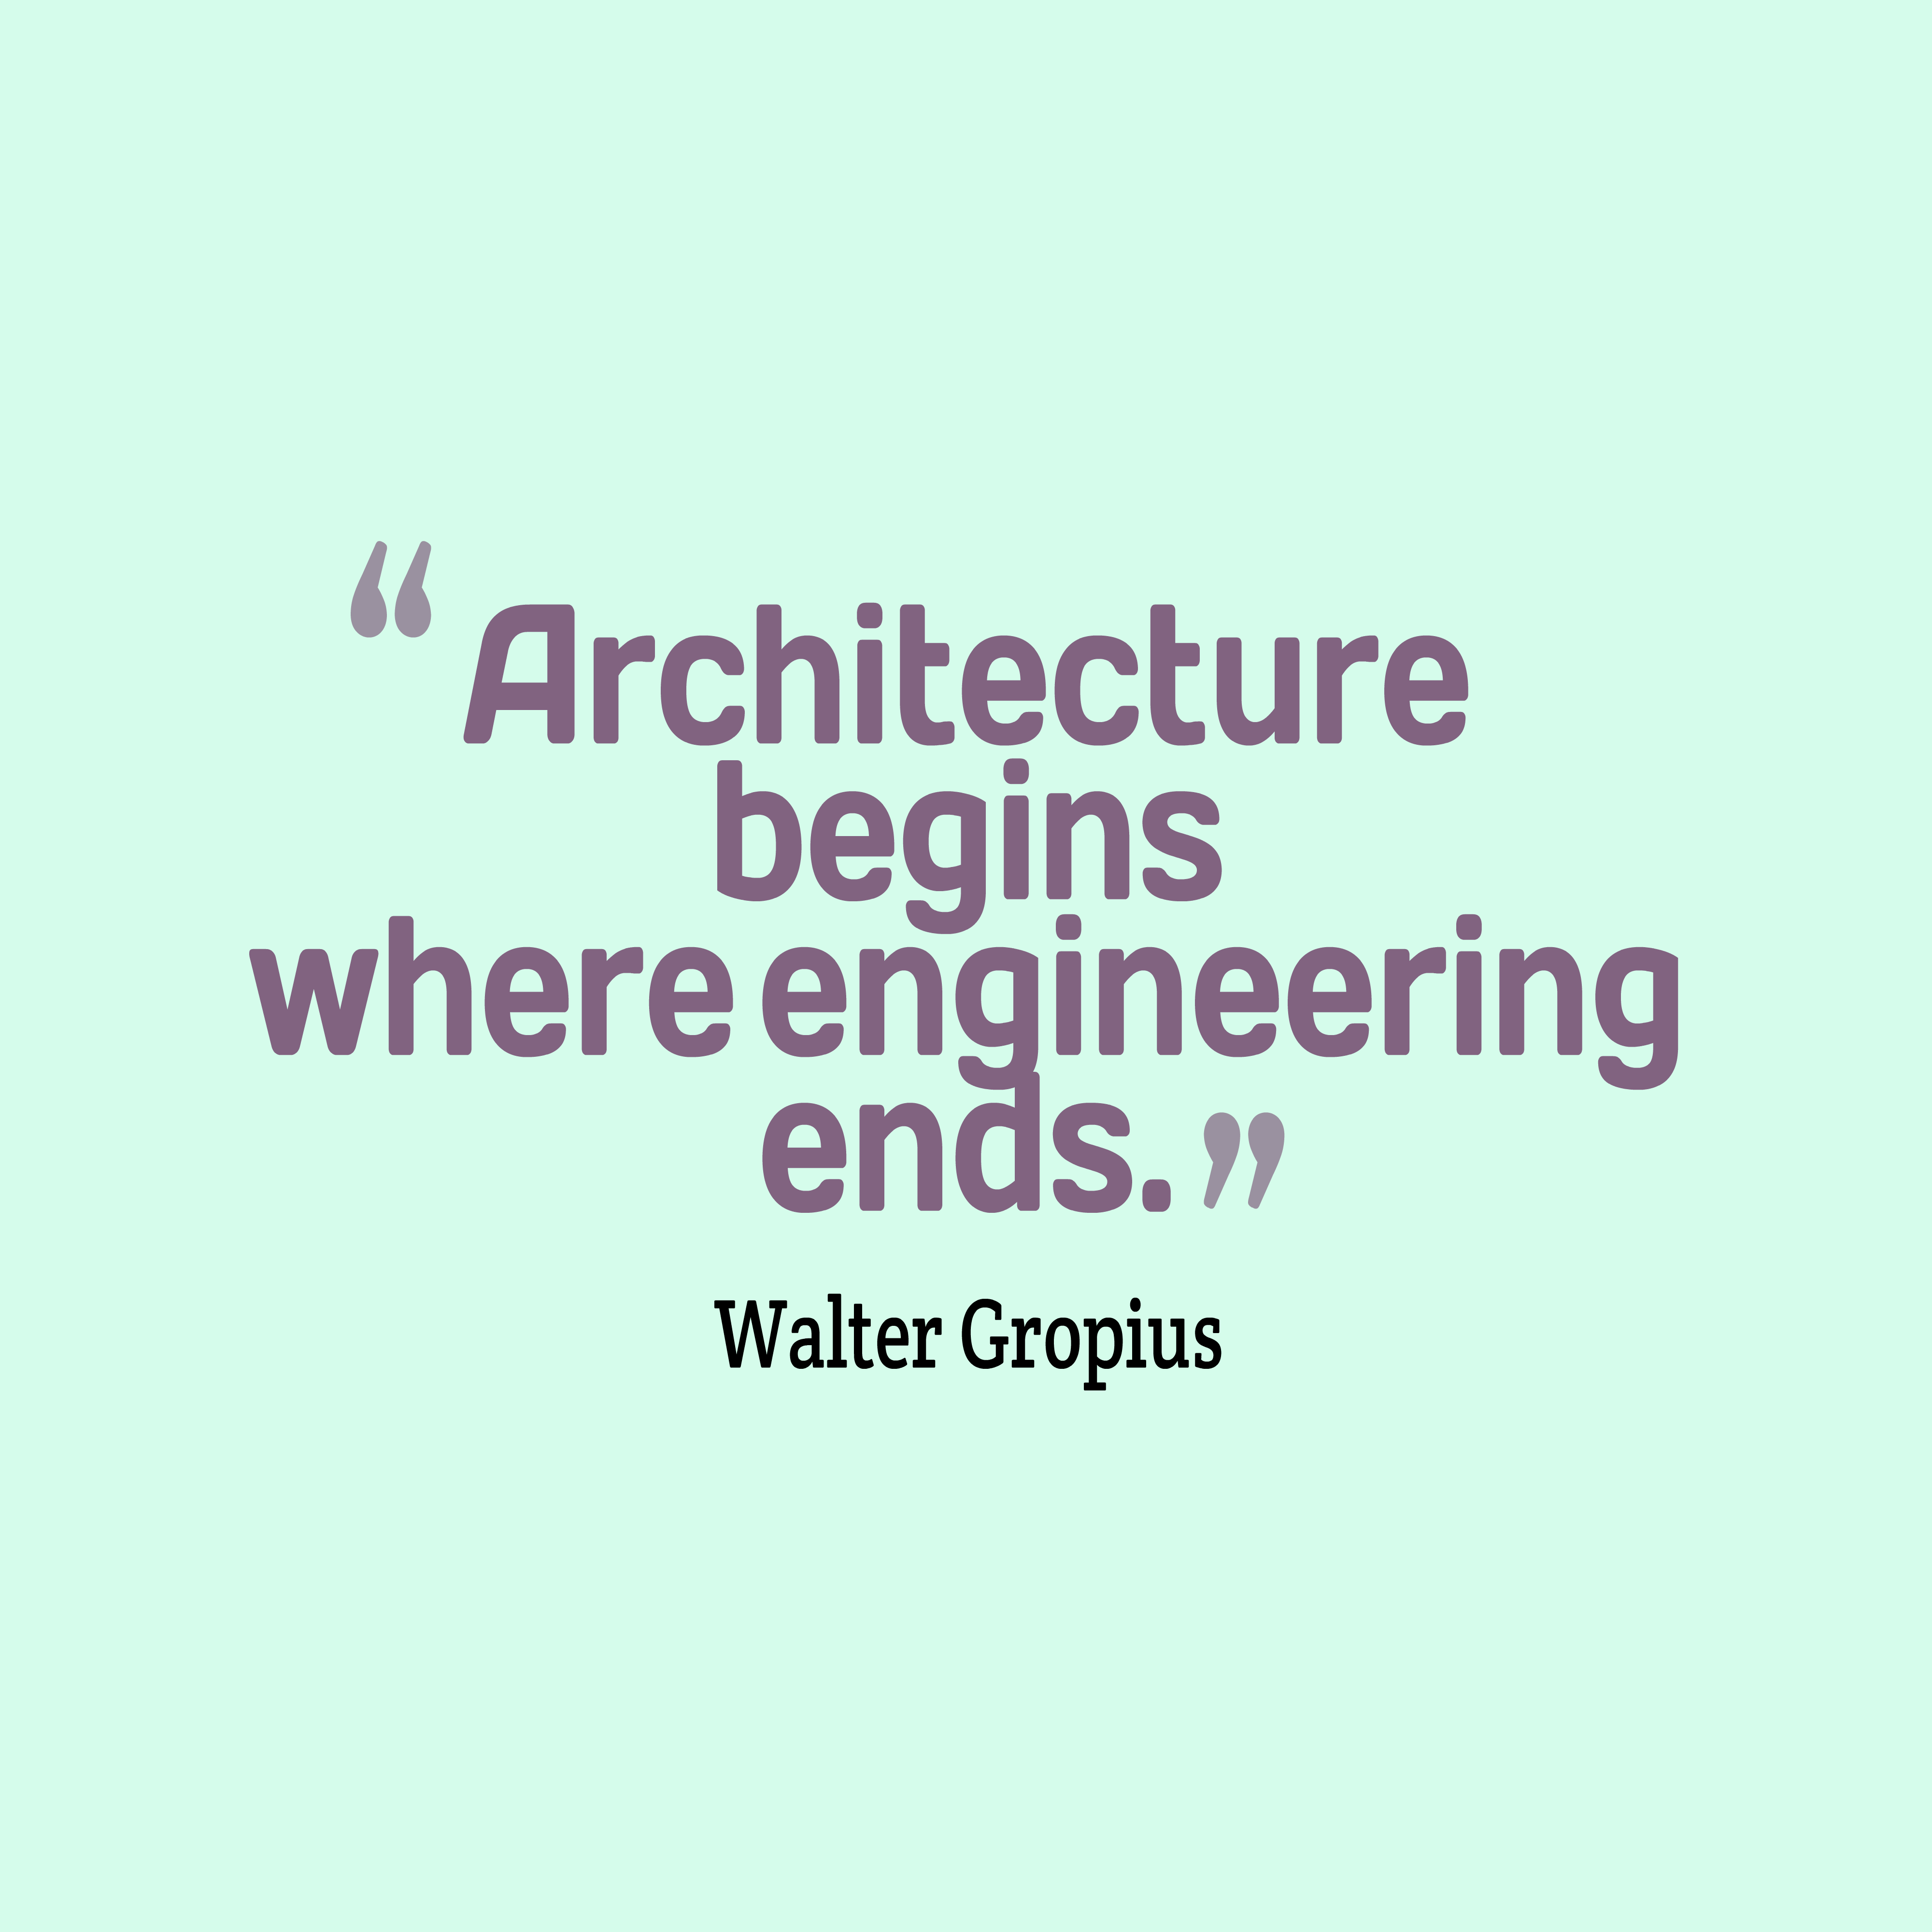 Walter Gropius Quote About Architecture